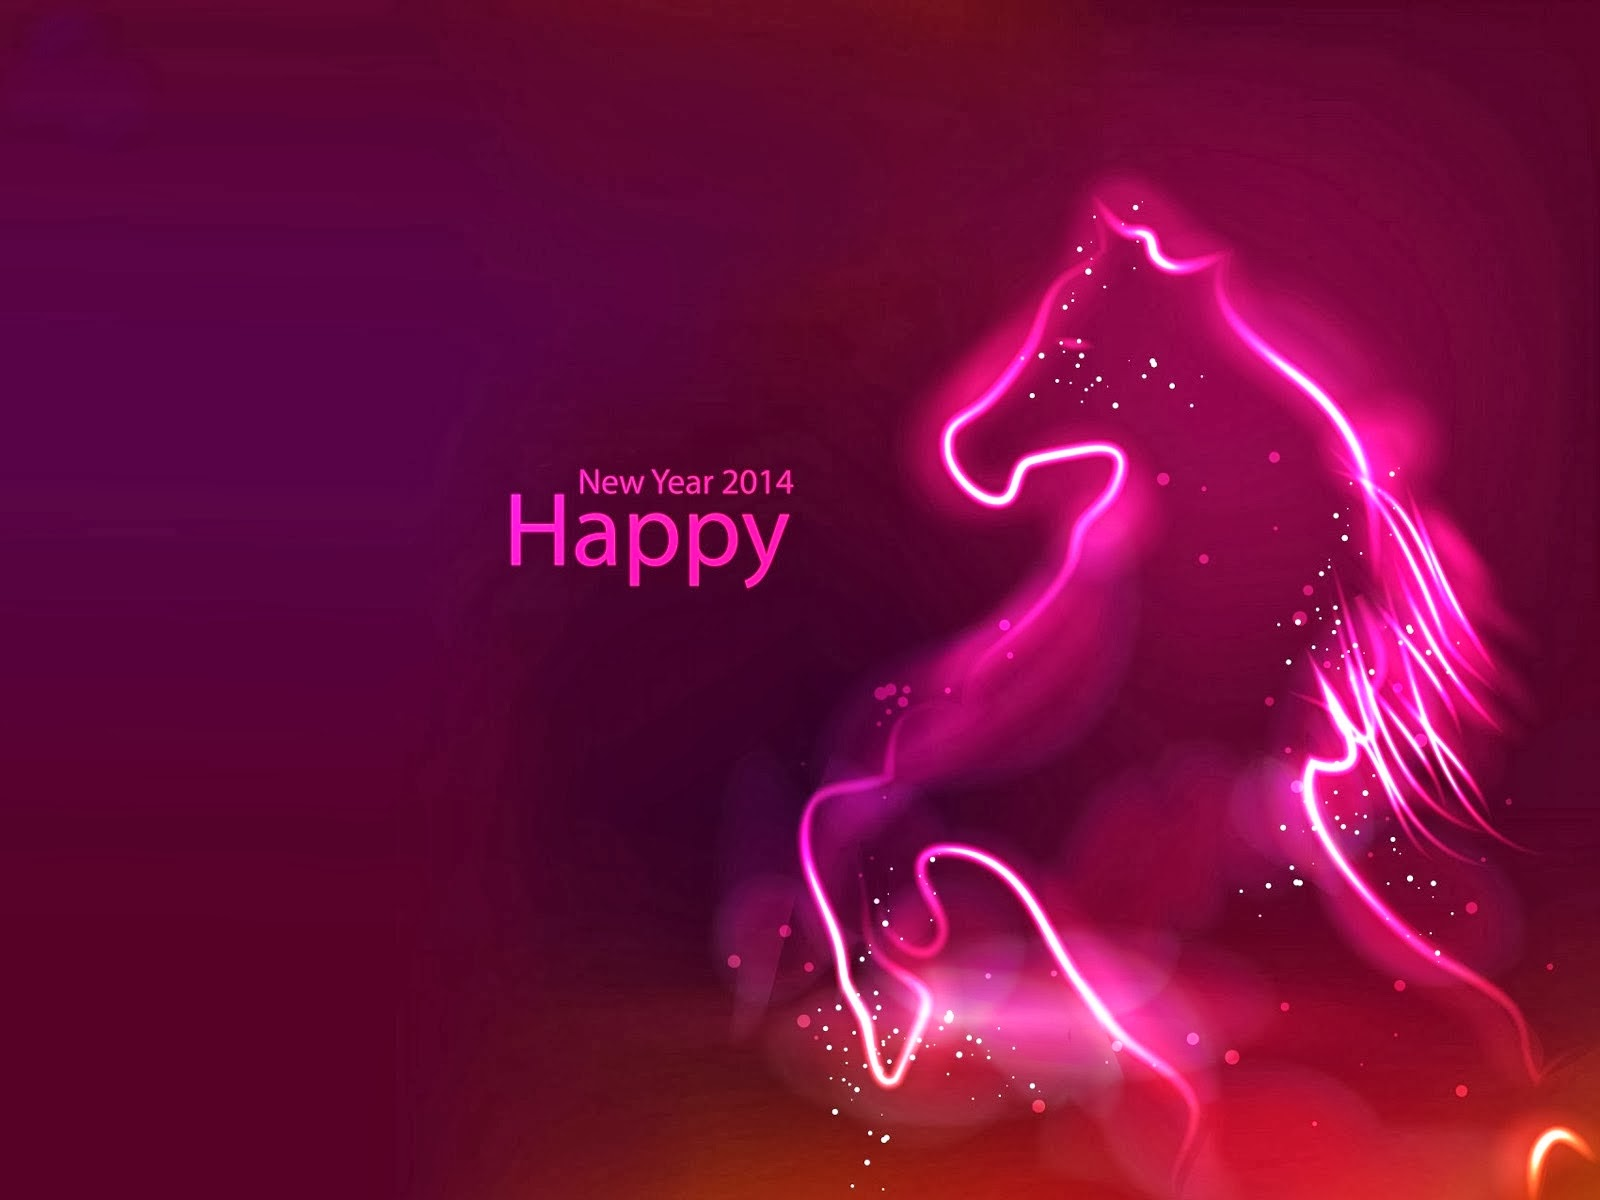 NewYearWishesImageHappyLunarNewYear2014HappyChineseNewYear . 1600 x 1200.Greeting The Lunar New Year